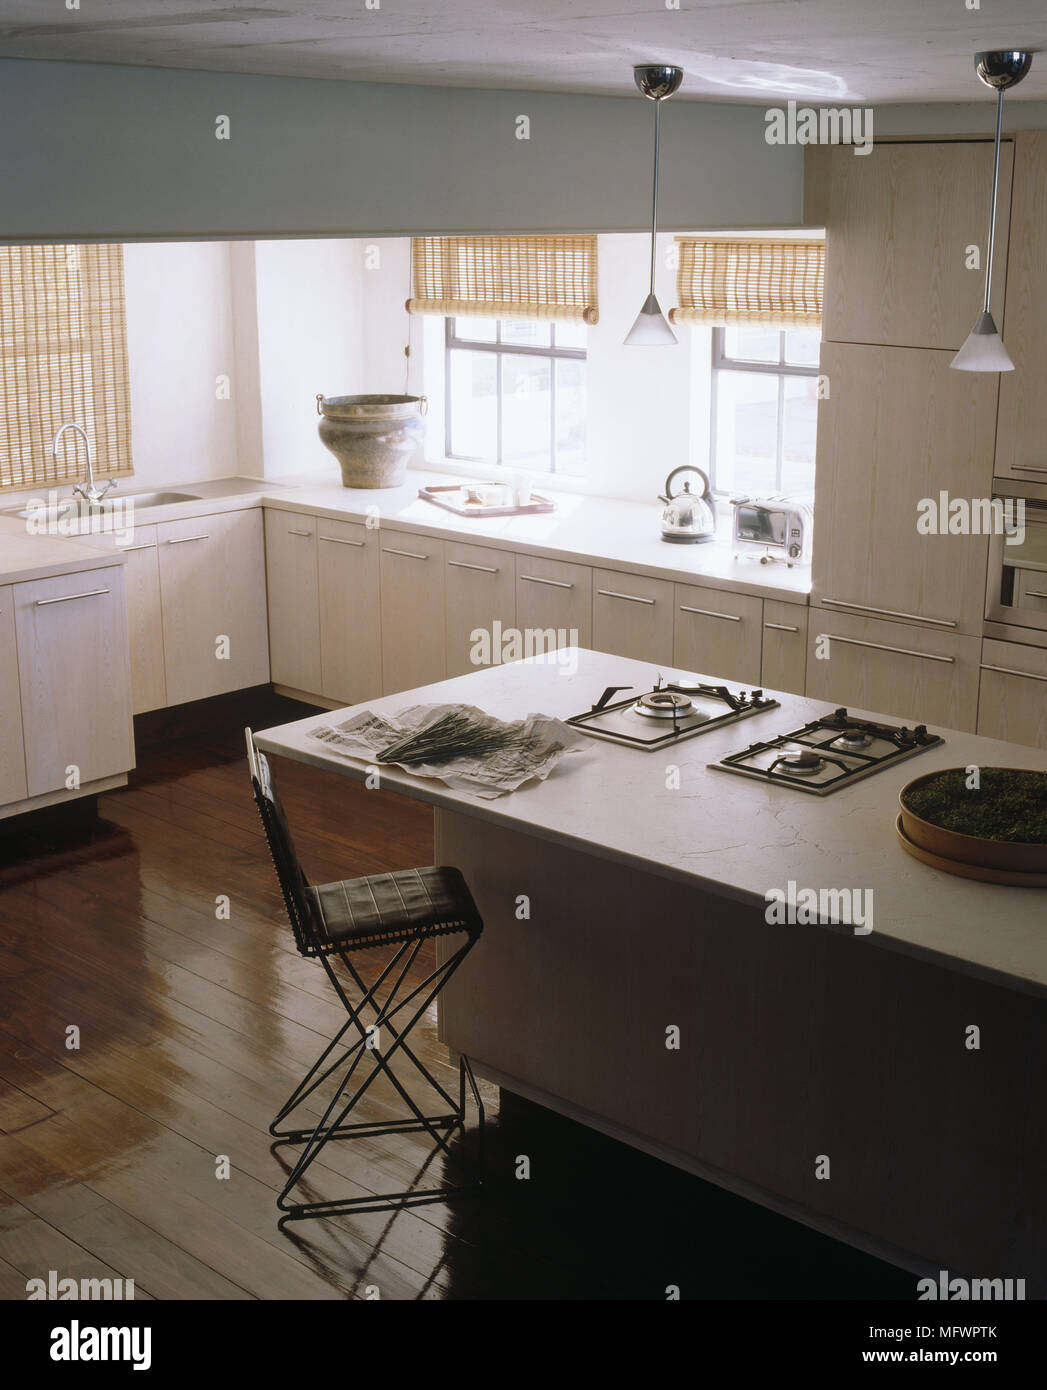 Kitchen With Metal Stool At Breakfast Bar Unit With Hob And On